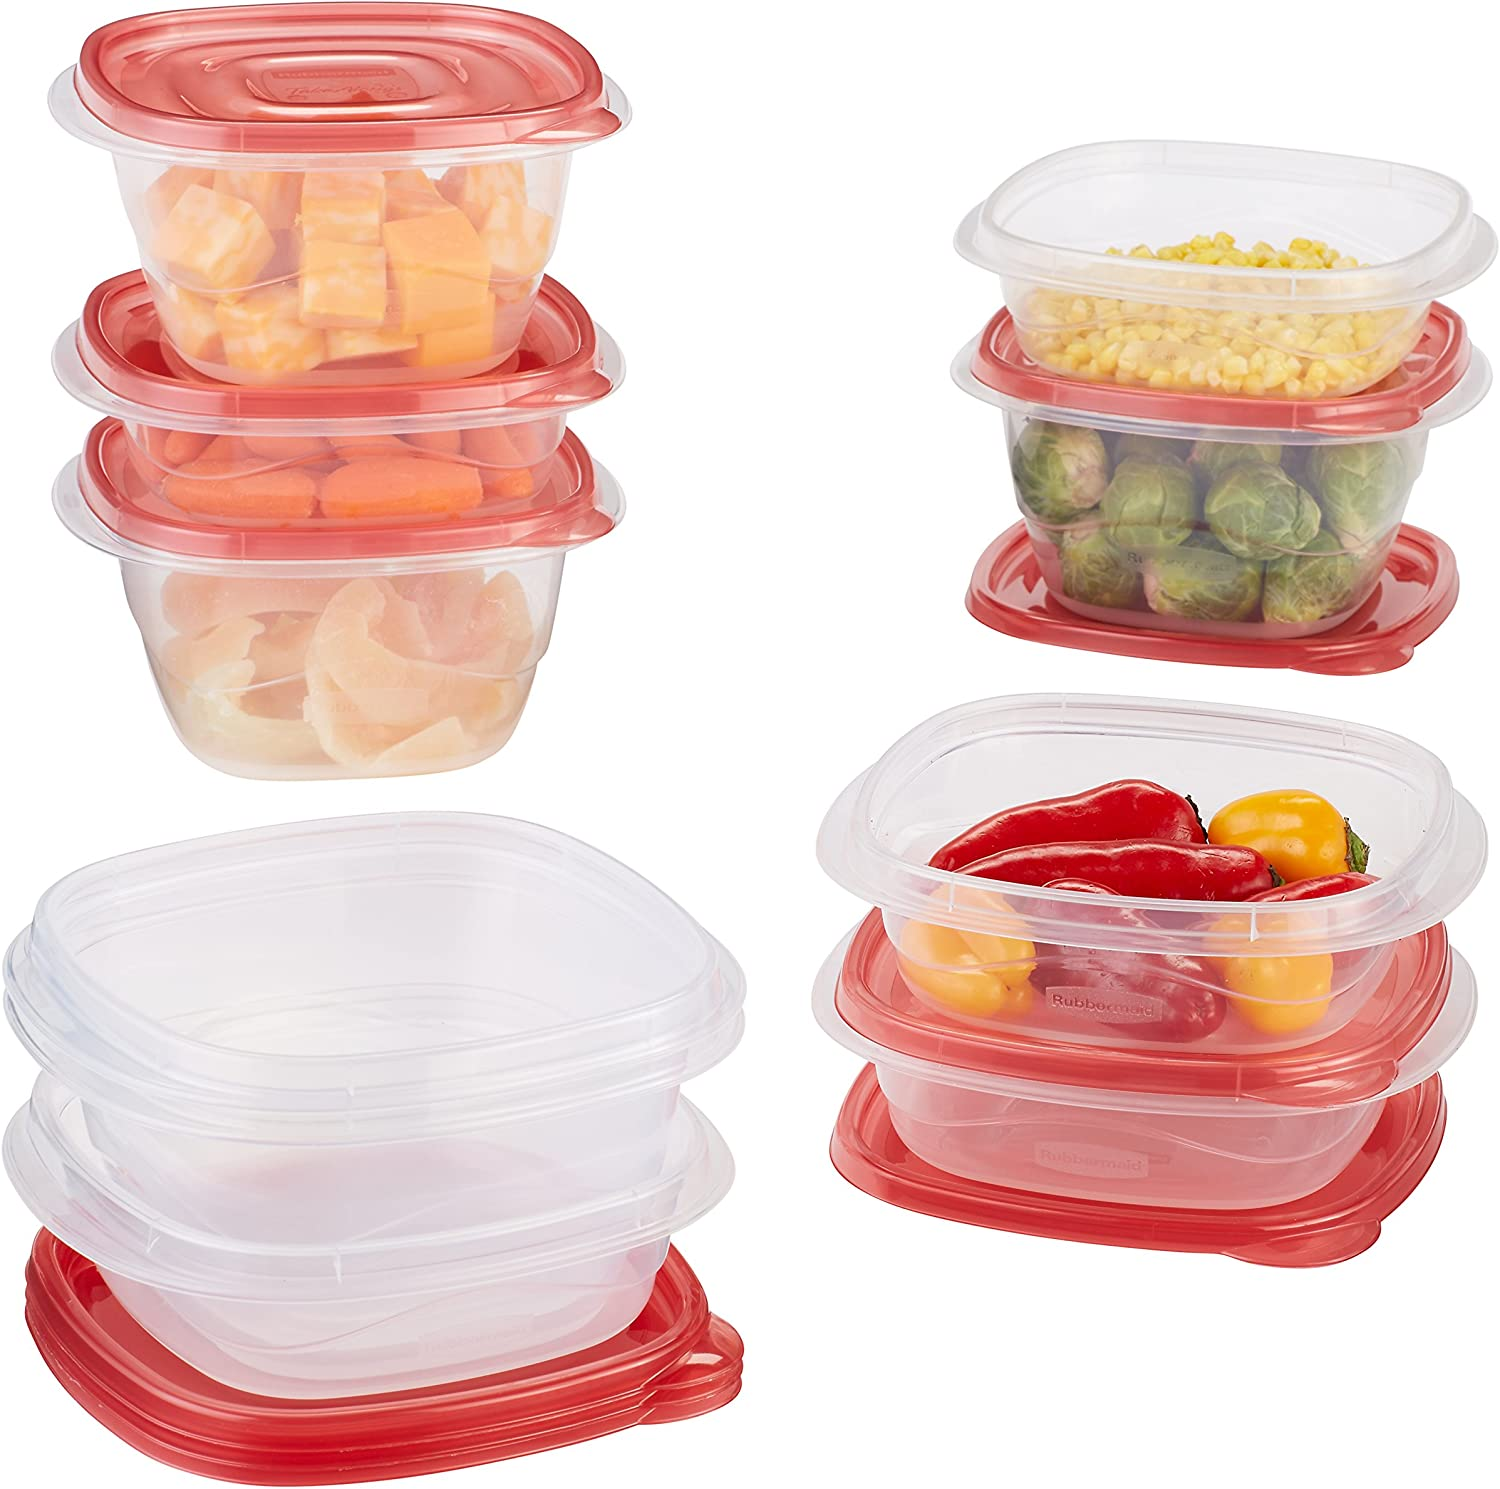 Rubbermaid TakeAlongs Assorted Food Storage Containers, 10-Piece Set, Chili Red (1779055)